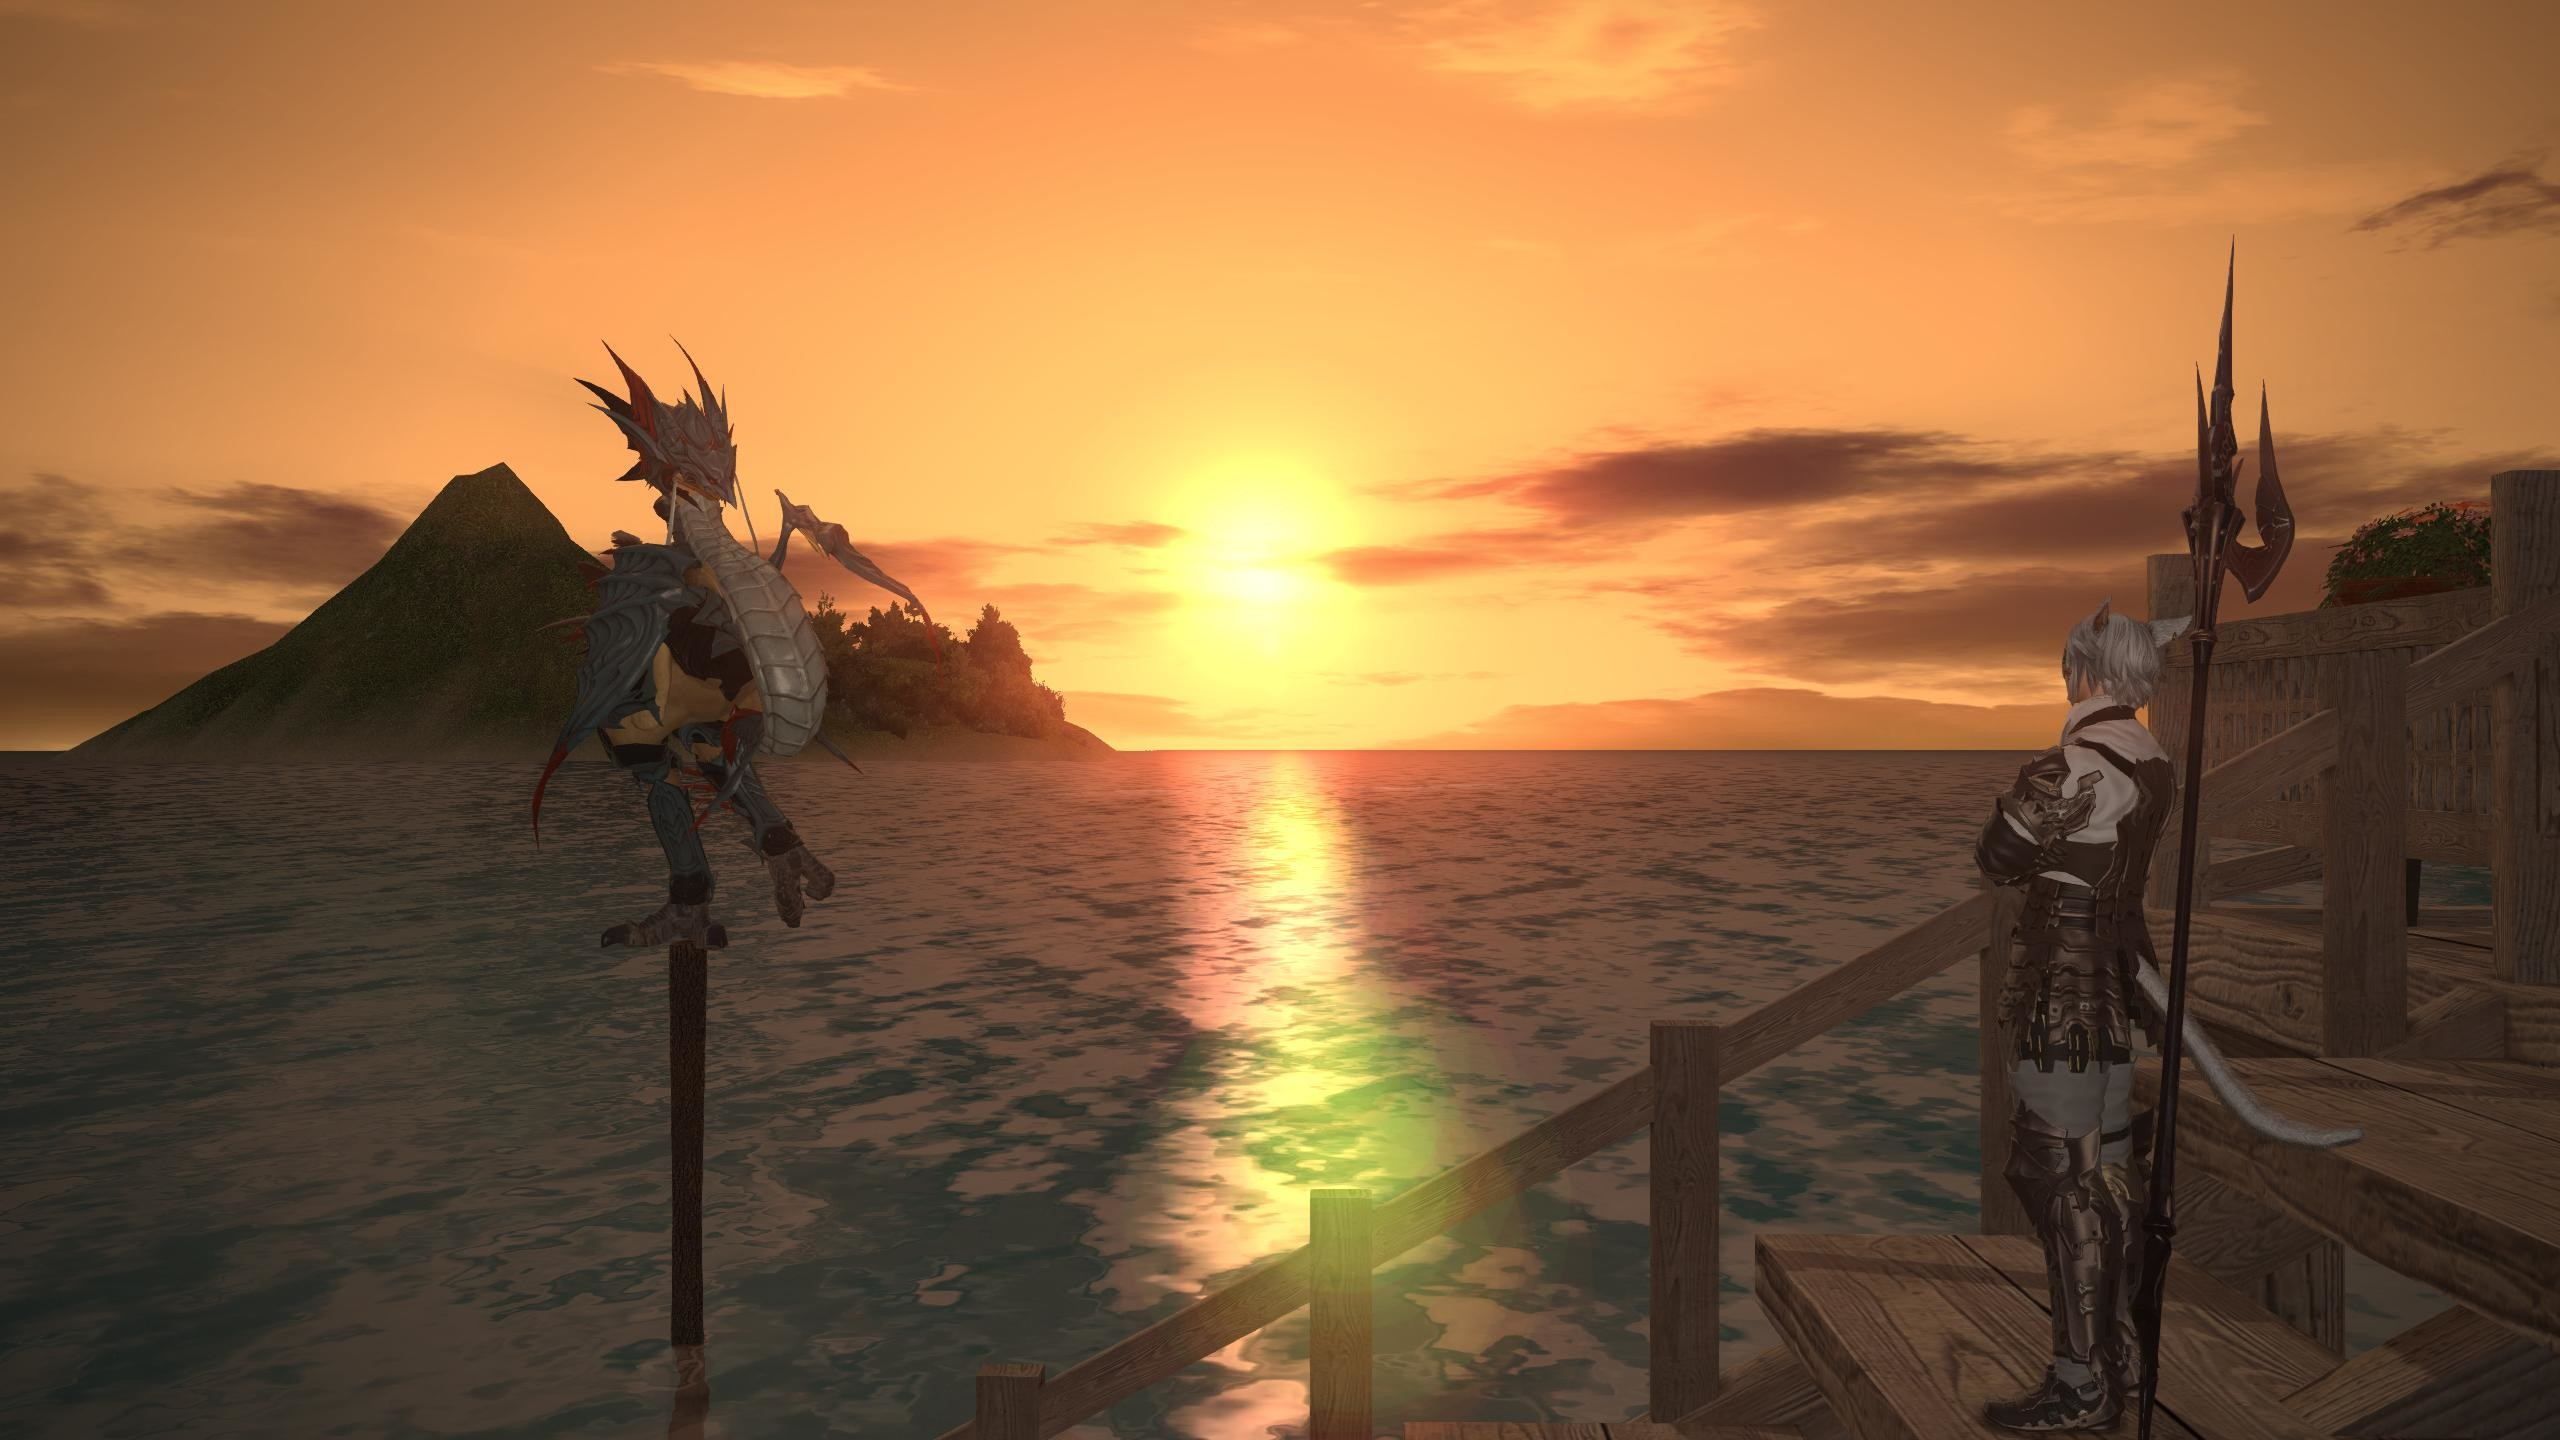 Res: 2560x1440, [Screenshot]Chocobo raising makes for some excellent wallpaper  opportunities [1440p] ...